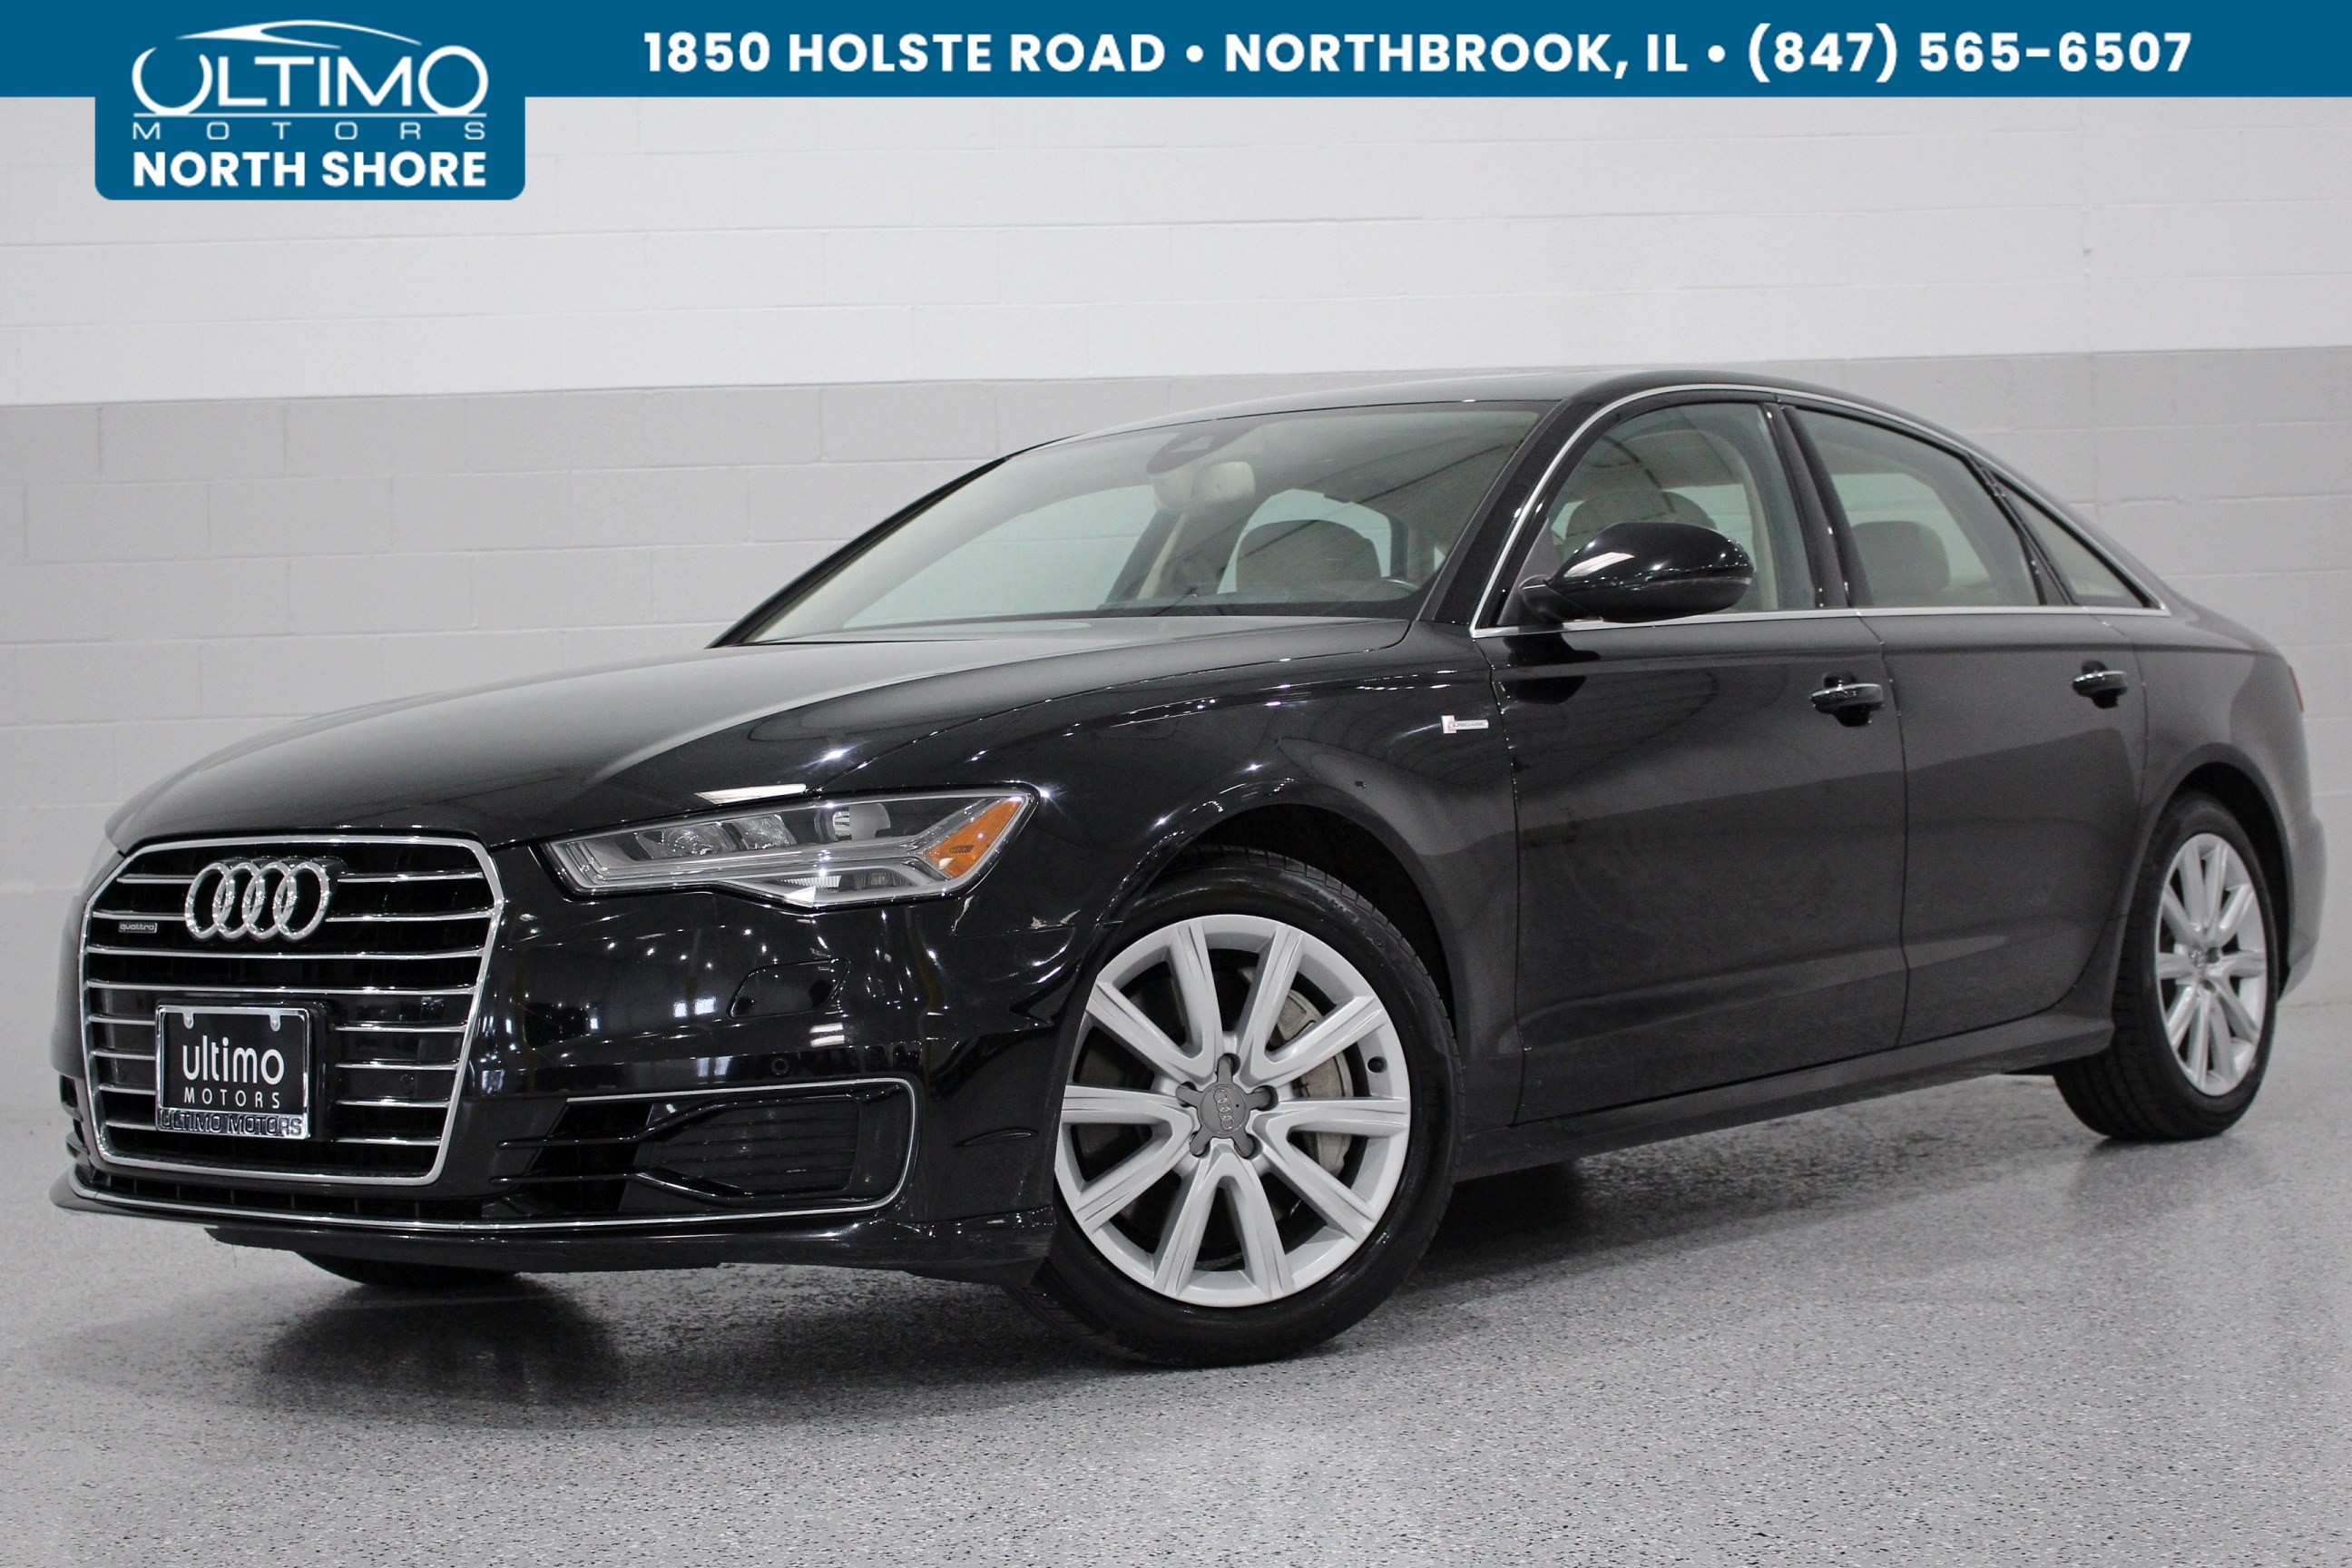 Pre-Owned 2016 Audi A6 3.0T Prestige 1 Owner